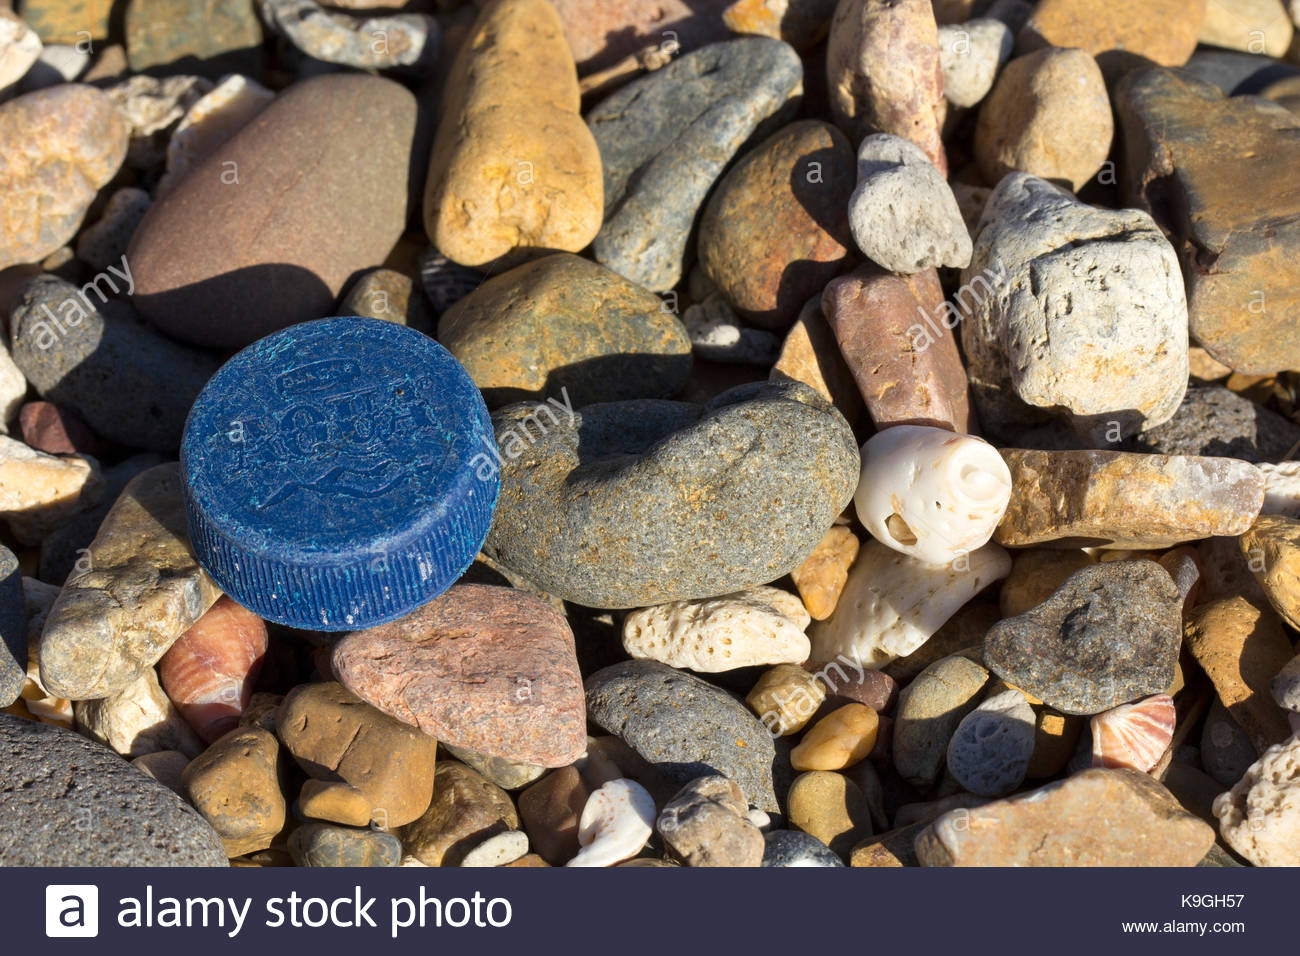 A cap from a single use bottle of water washed ashore and mixed with pebbles in Queensland, Australia. - Stock Image